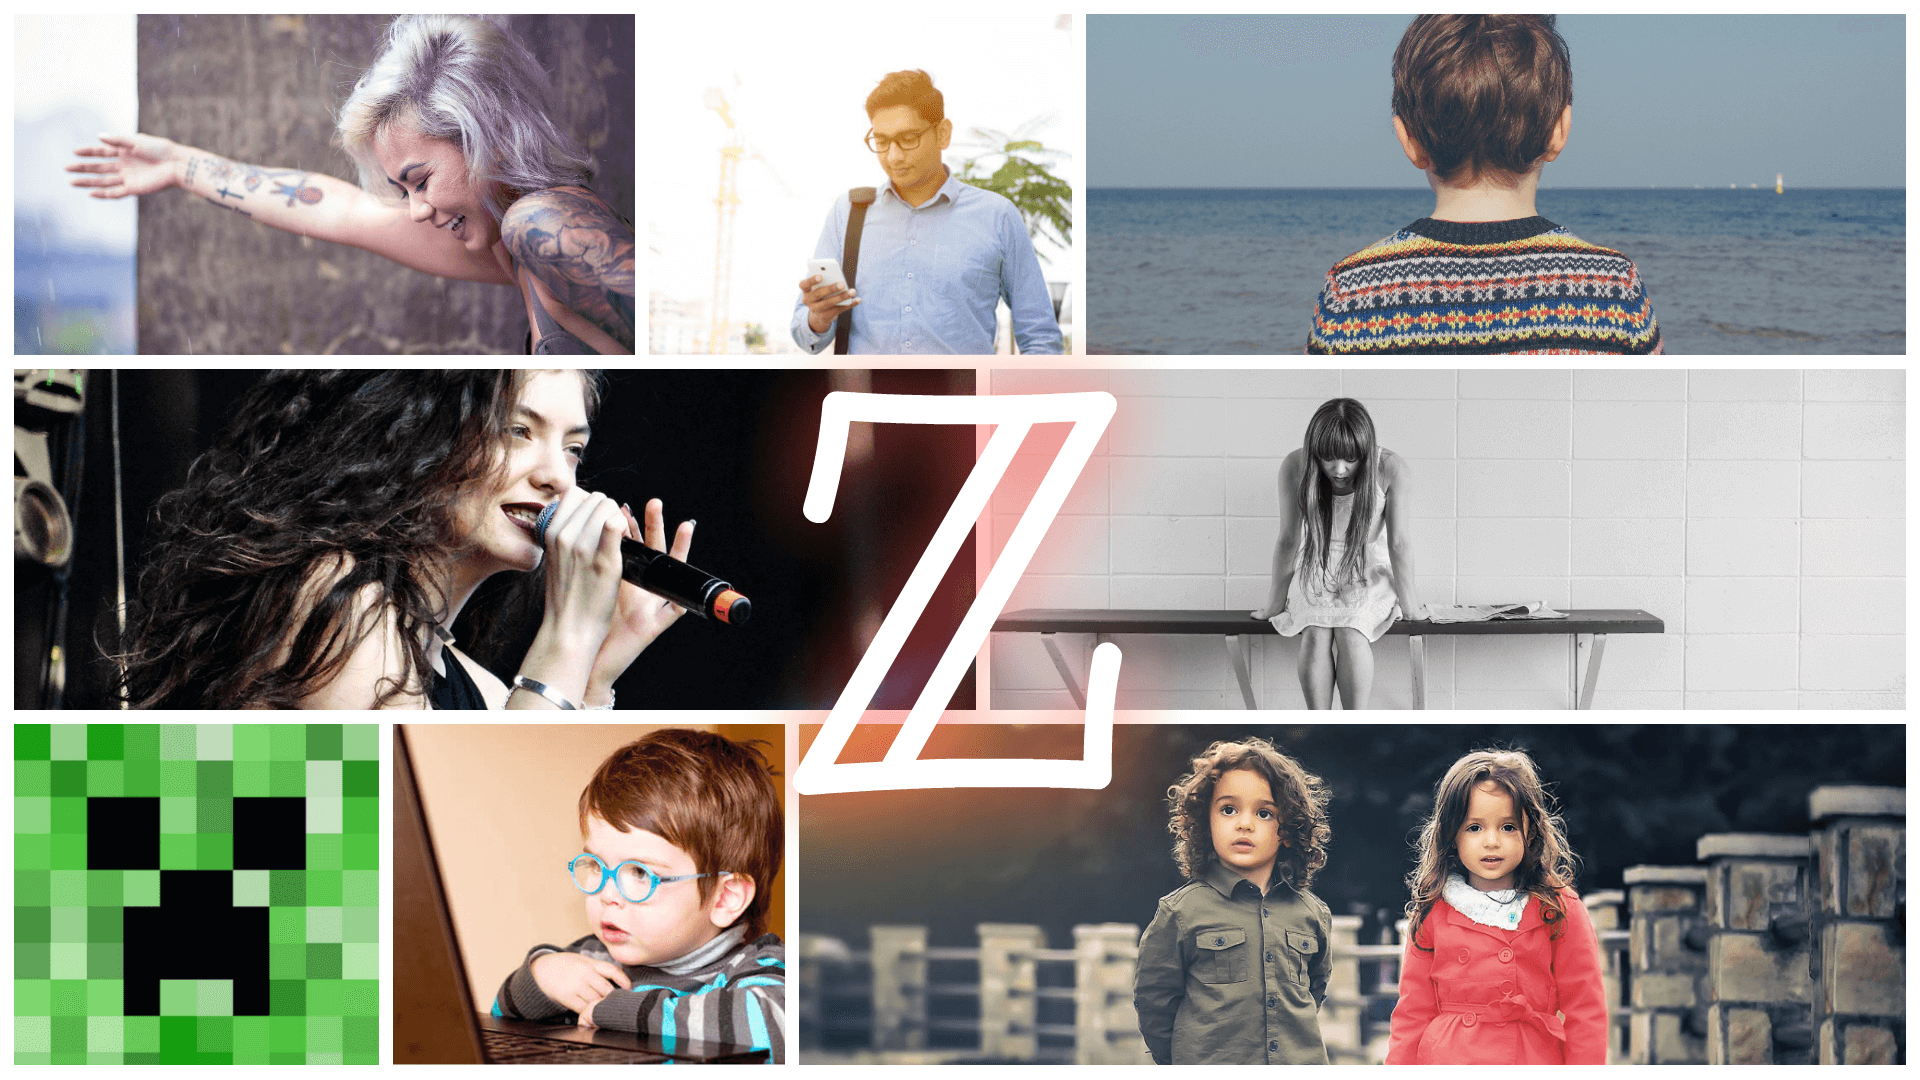 5 Keys to Engaging (Marketing to) Generation Z